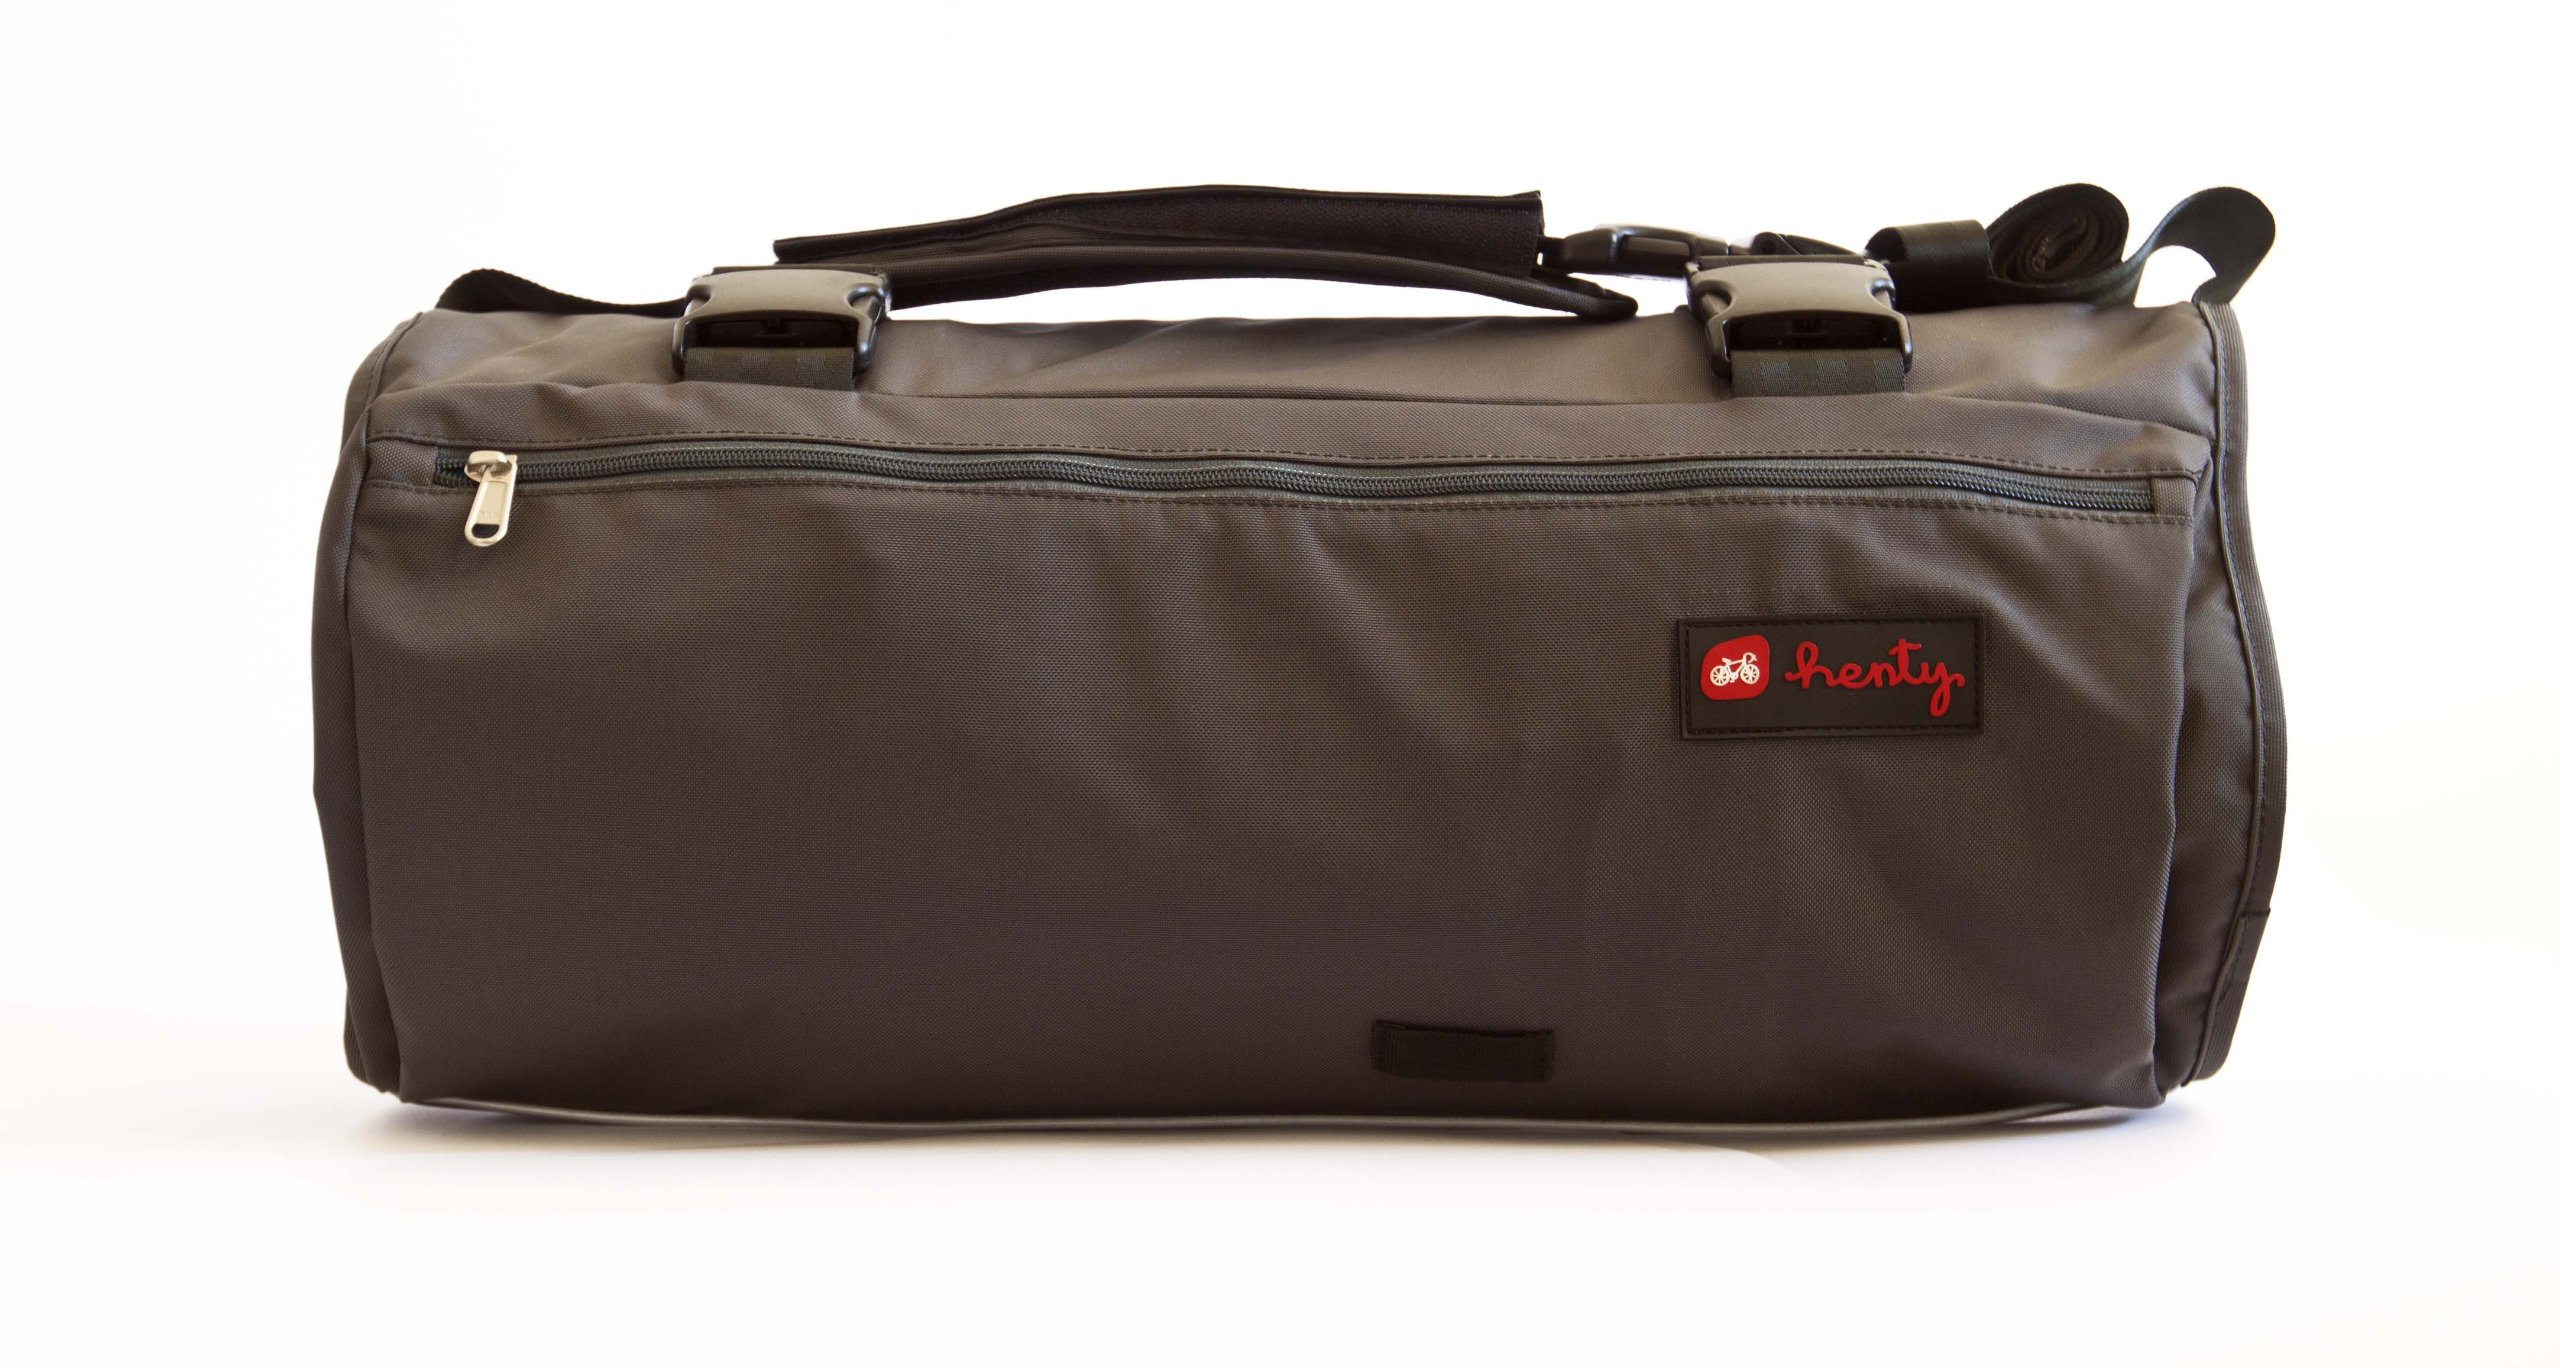 Henty Wingman Suit Bag, Blue